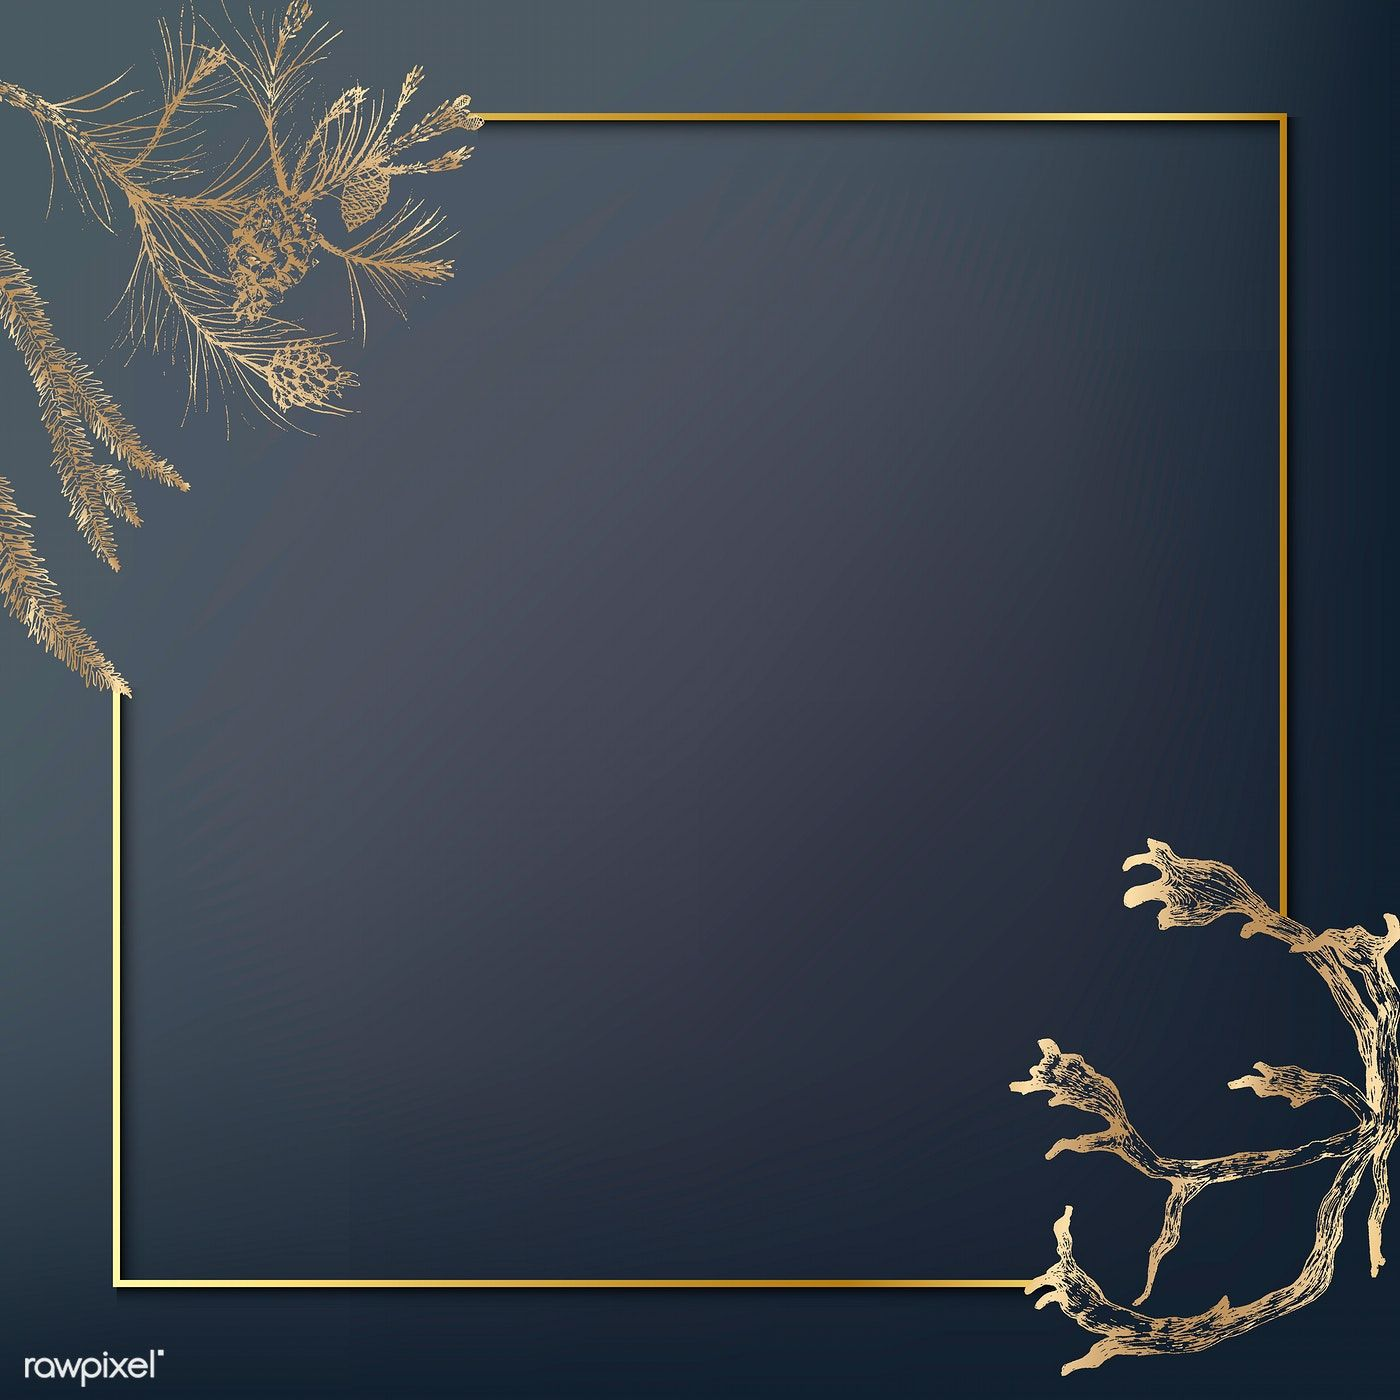 Download premium vector of Gold frame decorated with